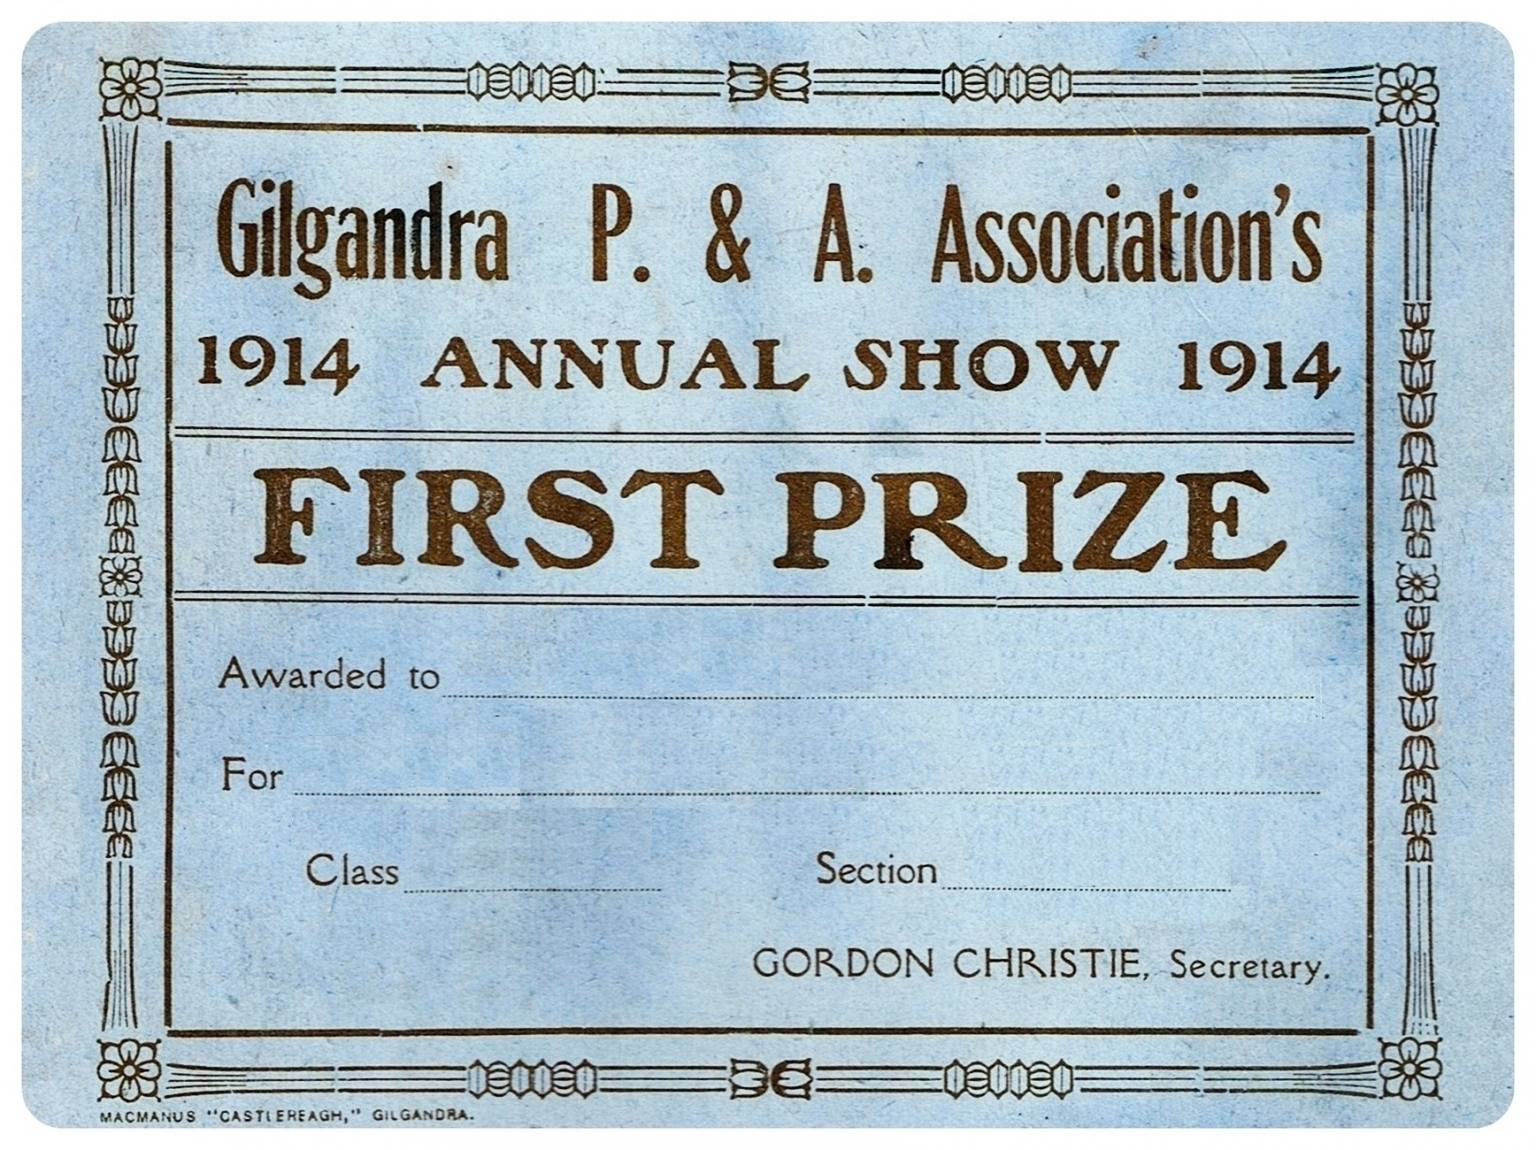 1914 First Prize Card